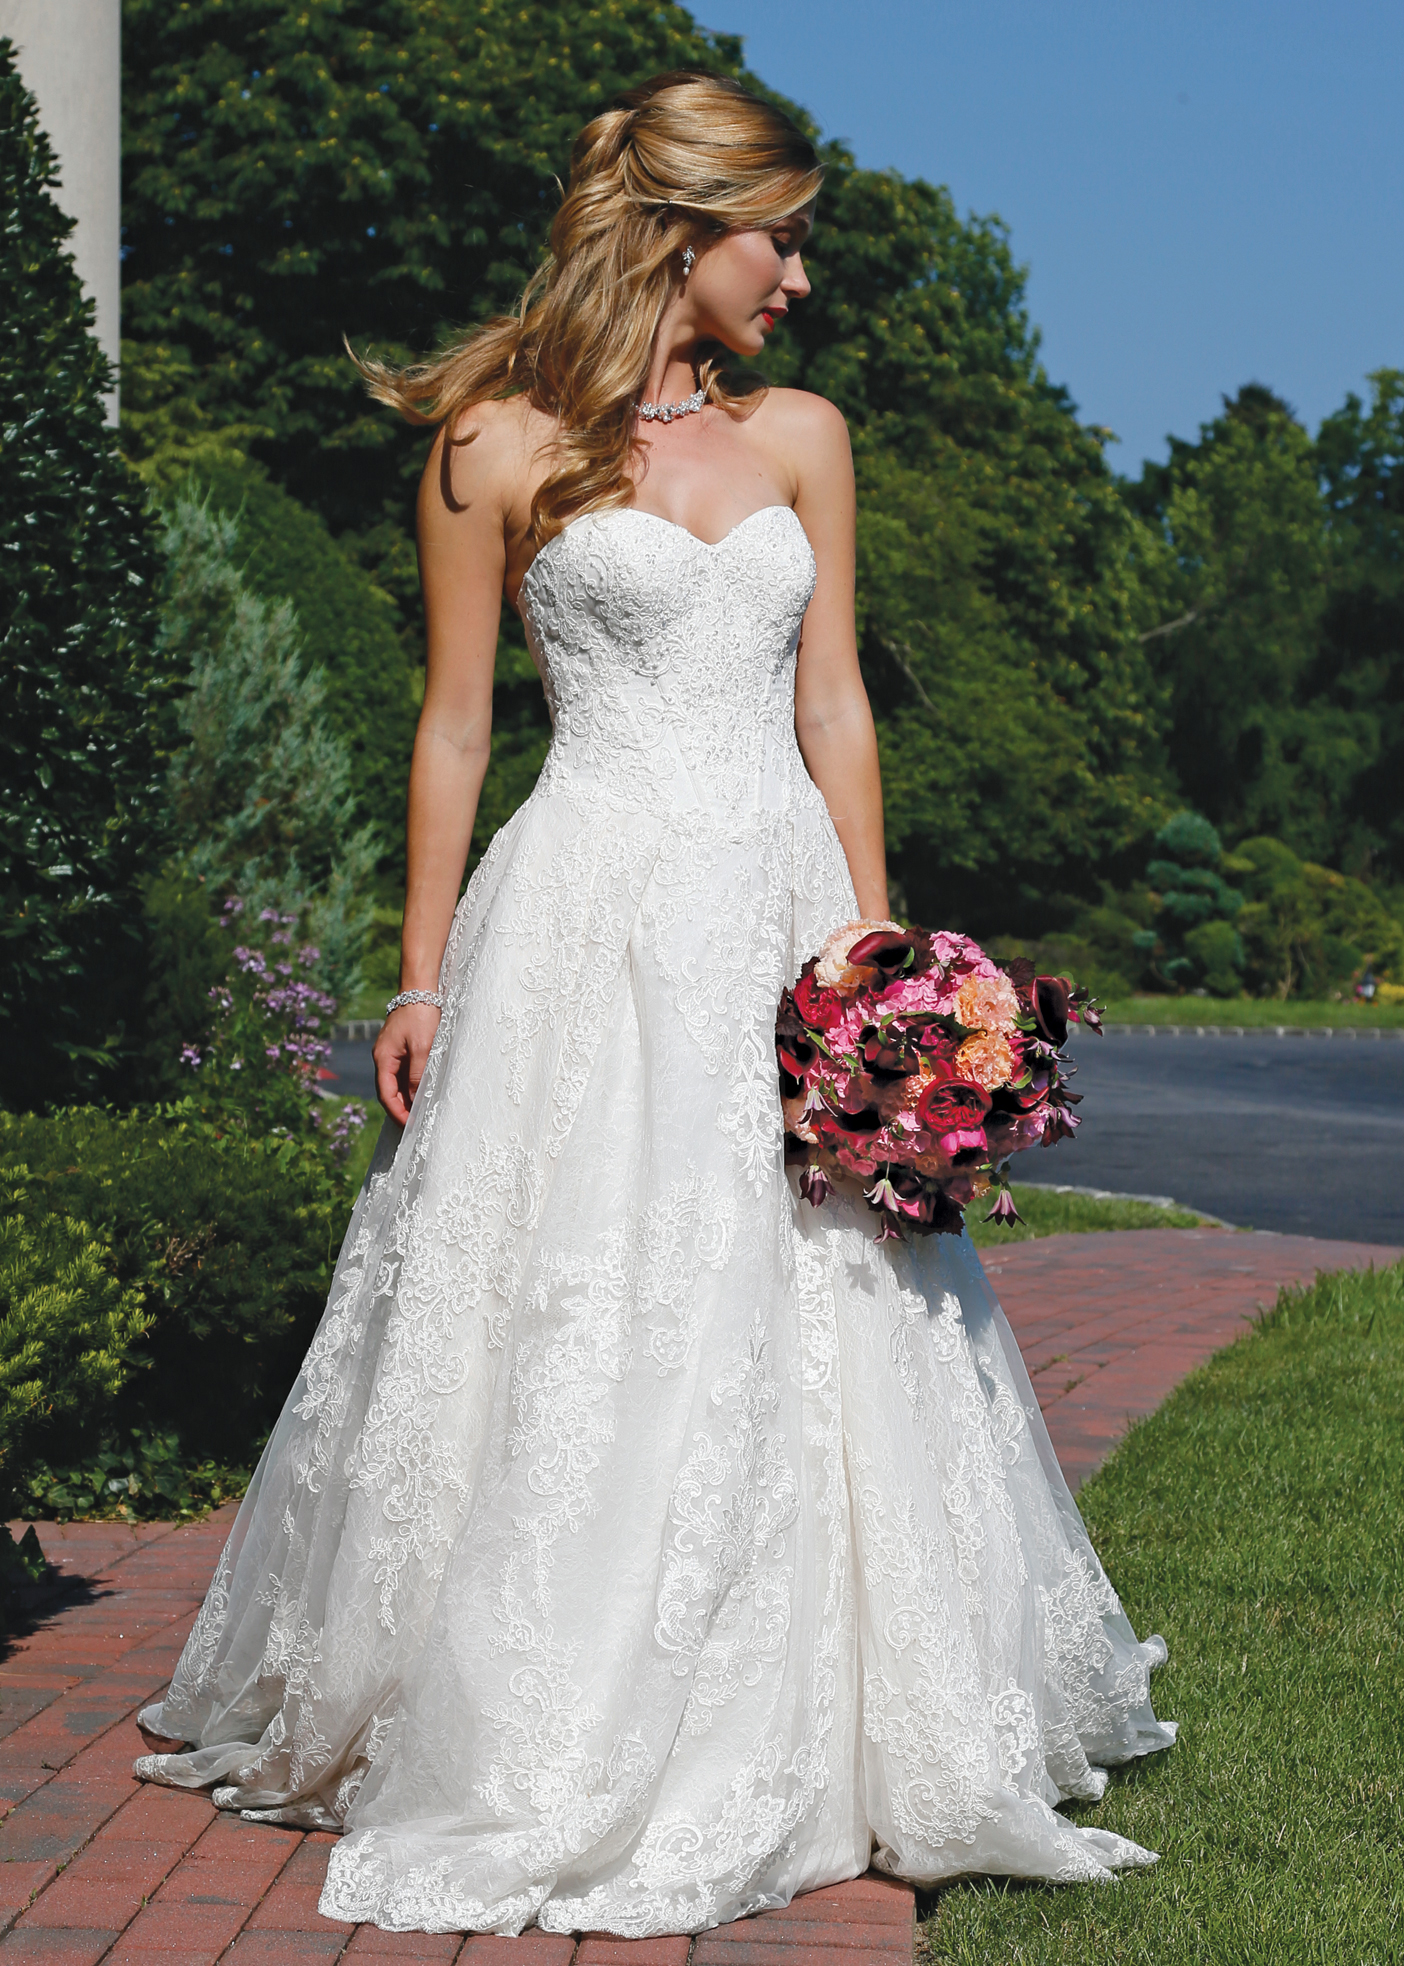 Ballgown dress bridal wedding gown by oleg cassini ny nj for Wedding dress designer oleg cassini